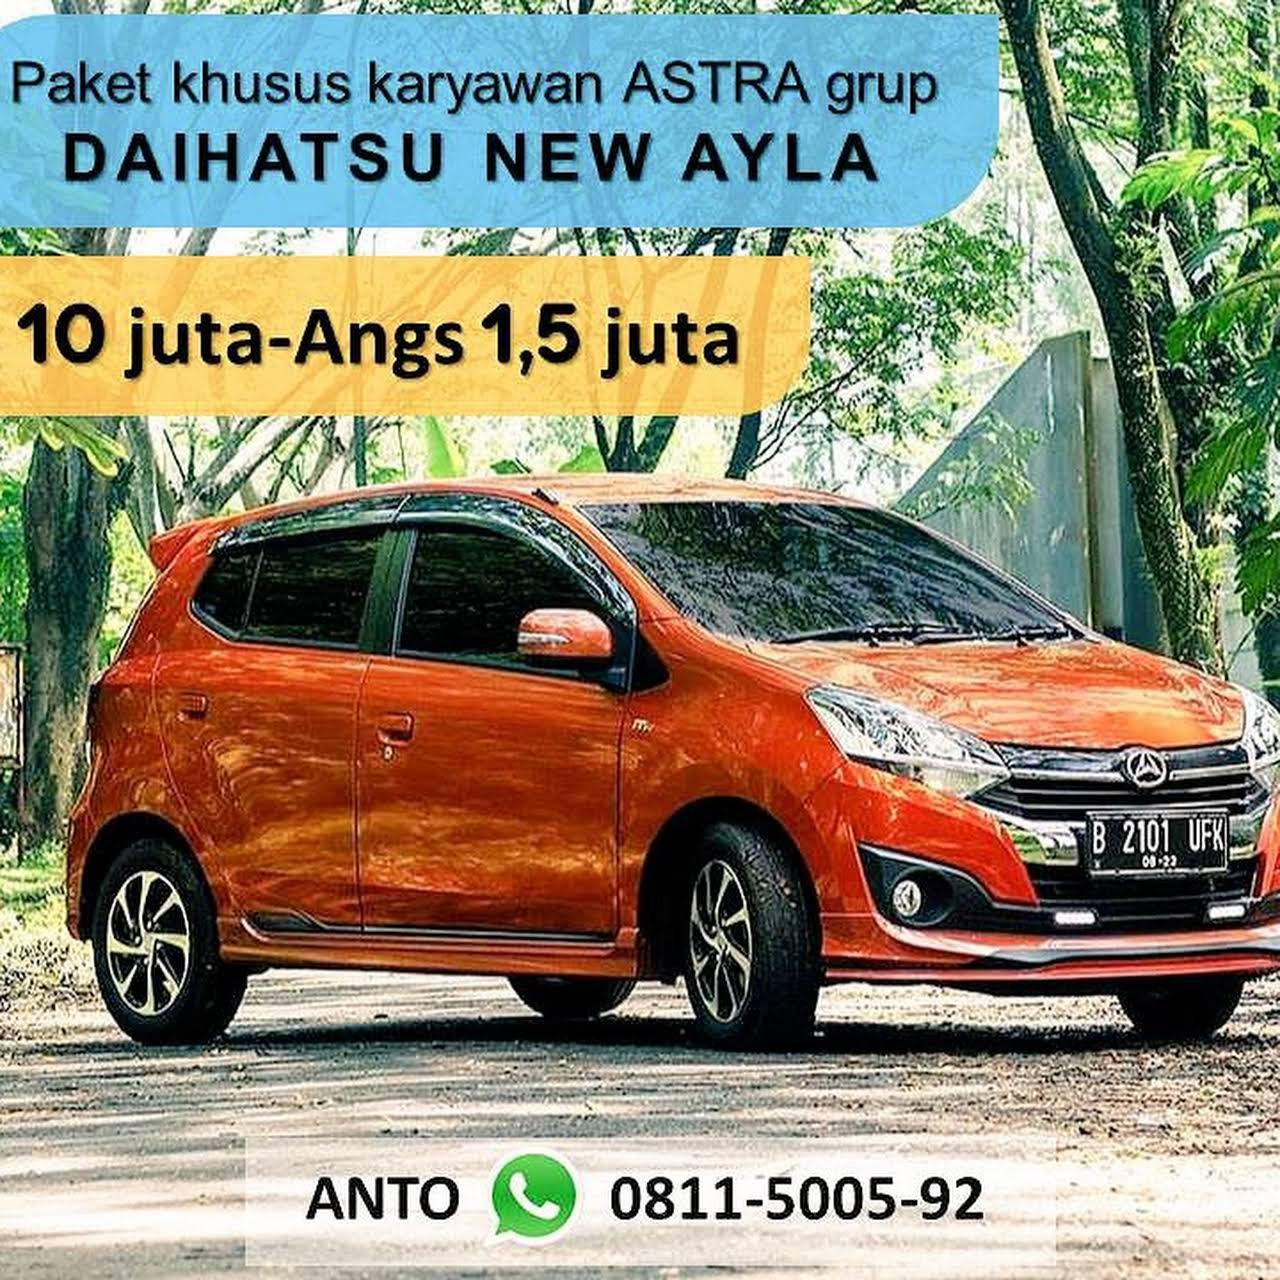 PT Astra International Tbk Daihatsu Cabang Banjarmasin